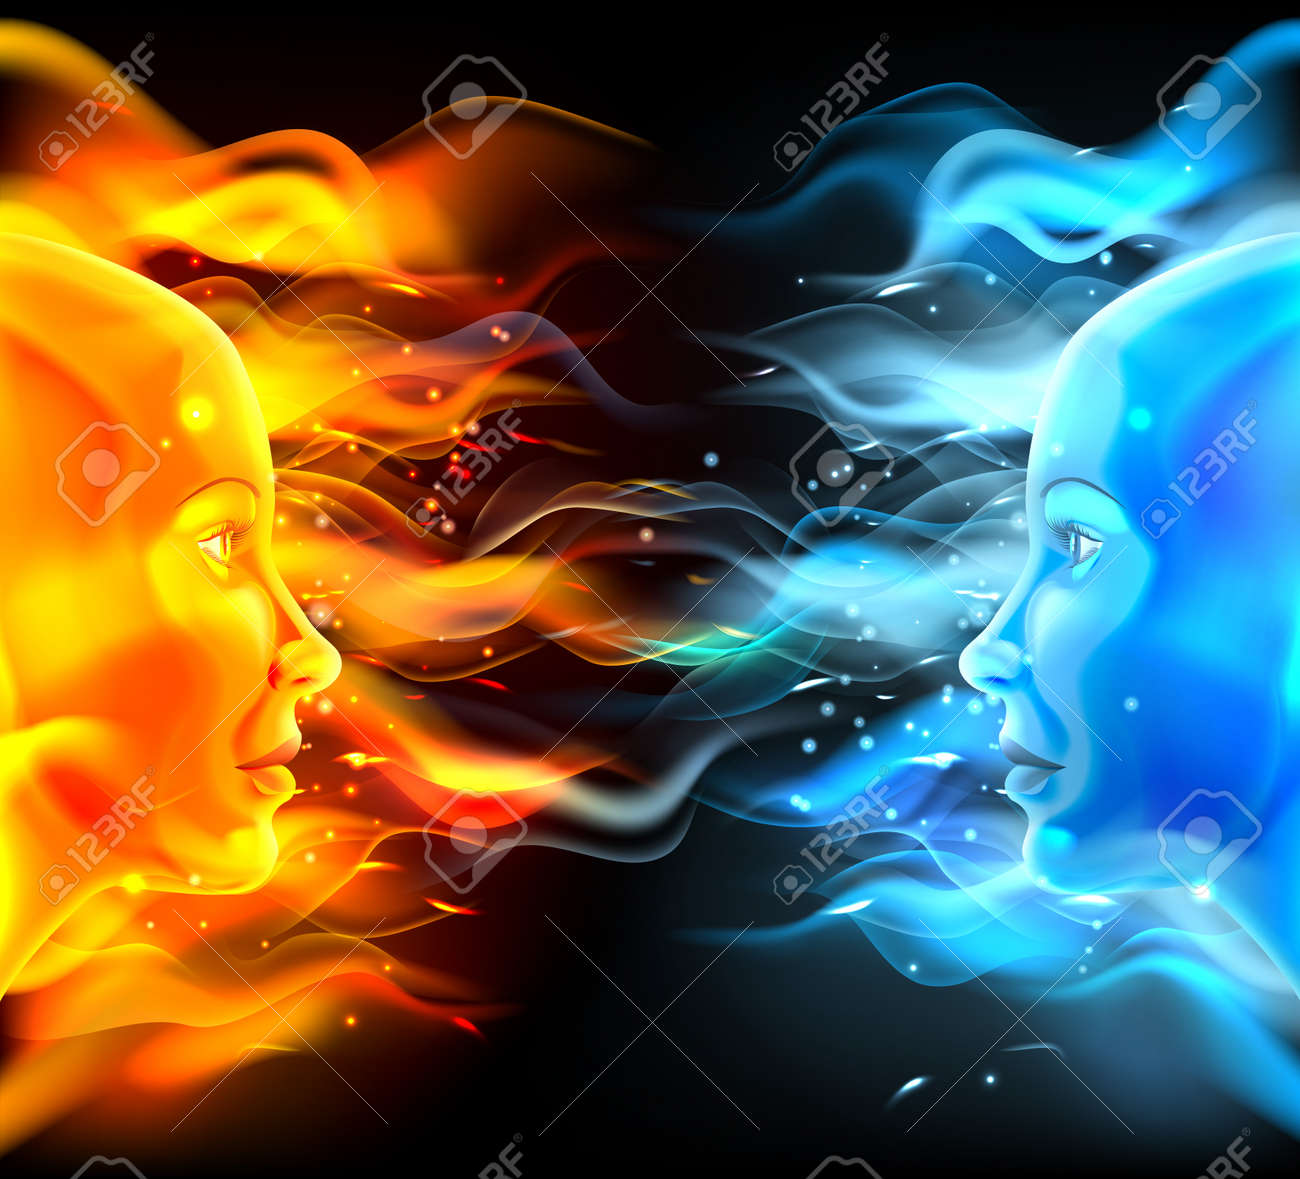 Opposites faces concept of two faces with fire or flames one hot orange and one cold blue. Could be a concept for the sun and moon, hot and cold, summer and winter, passion and logic or similar. - 57754253